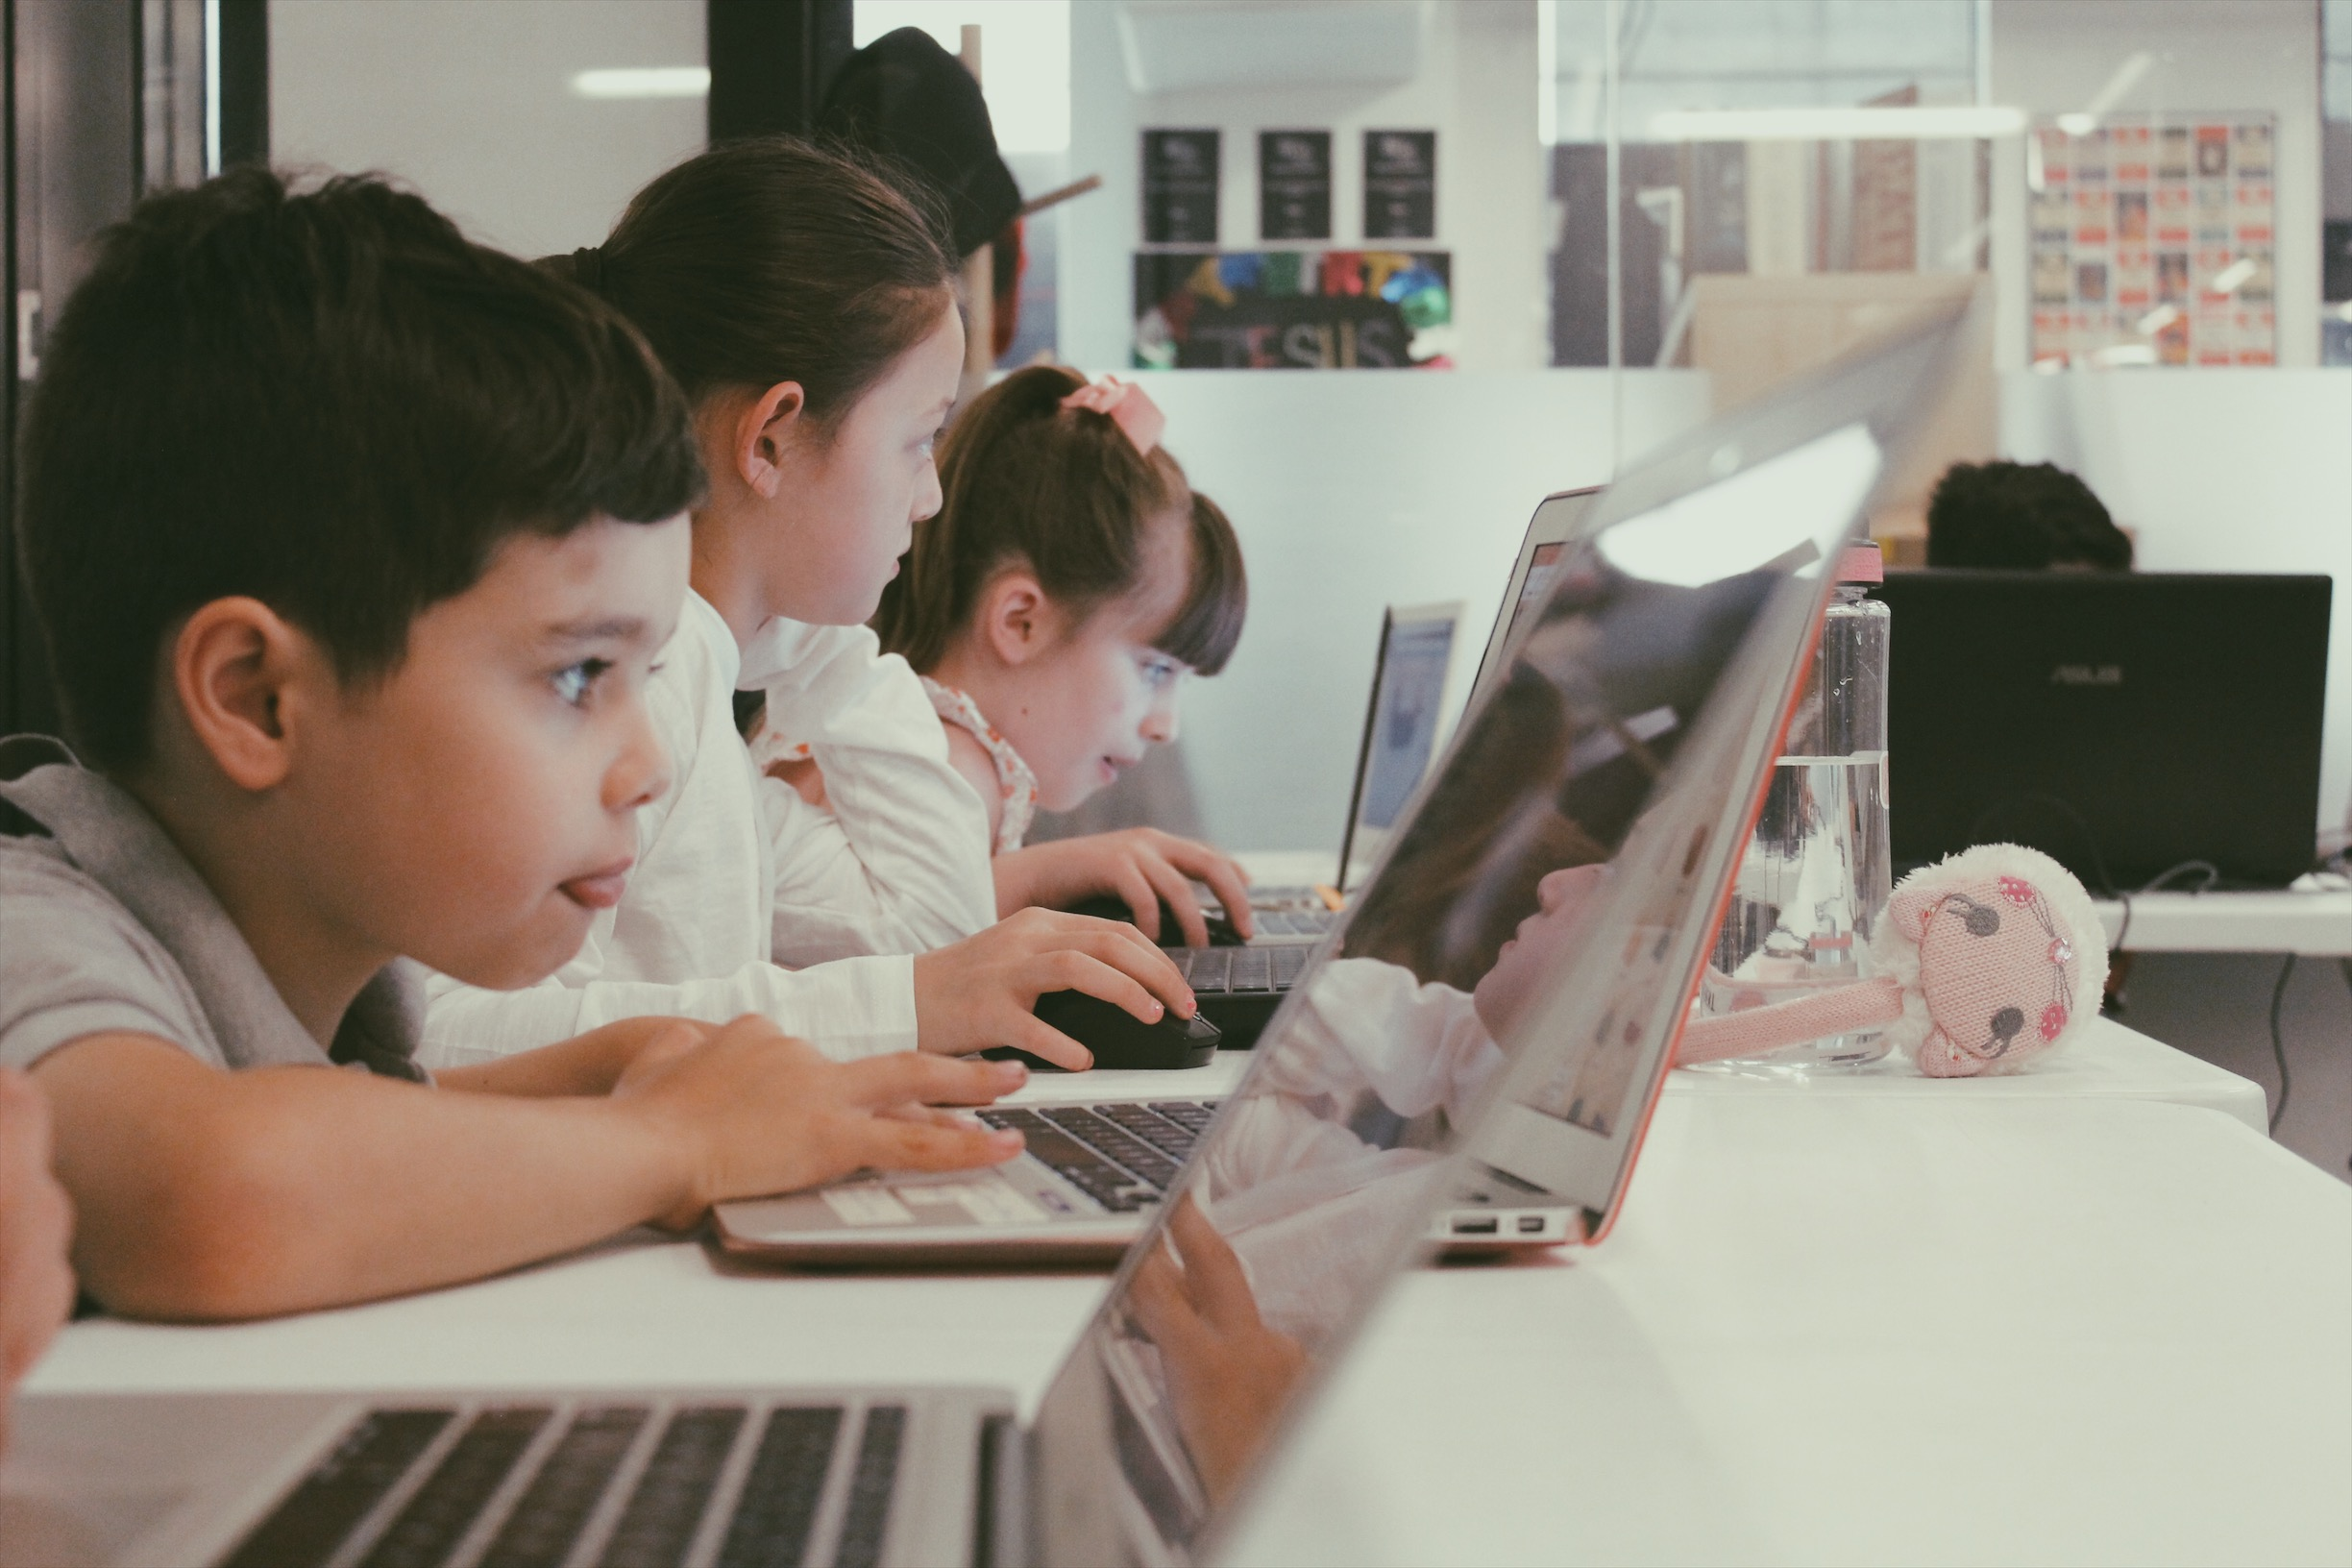 Lemonade Camp: kids work intently on their laptops